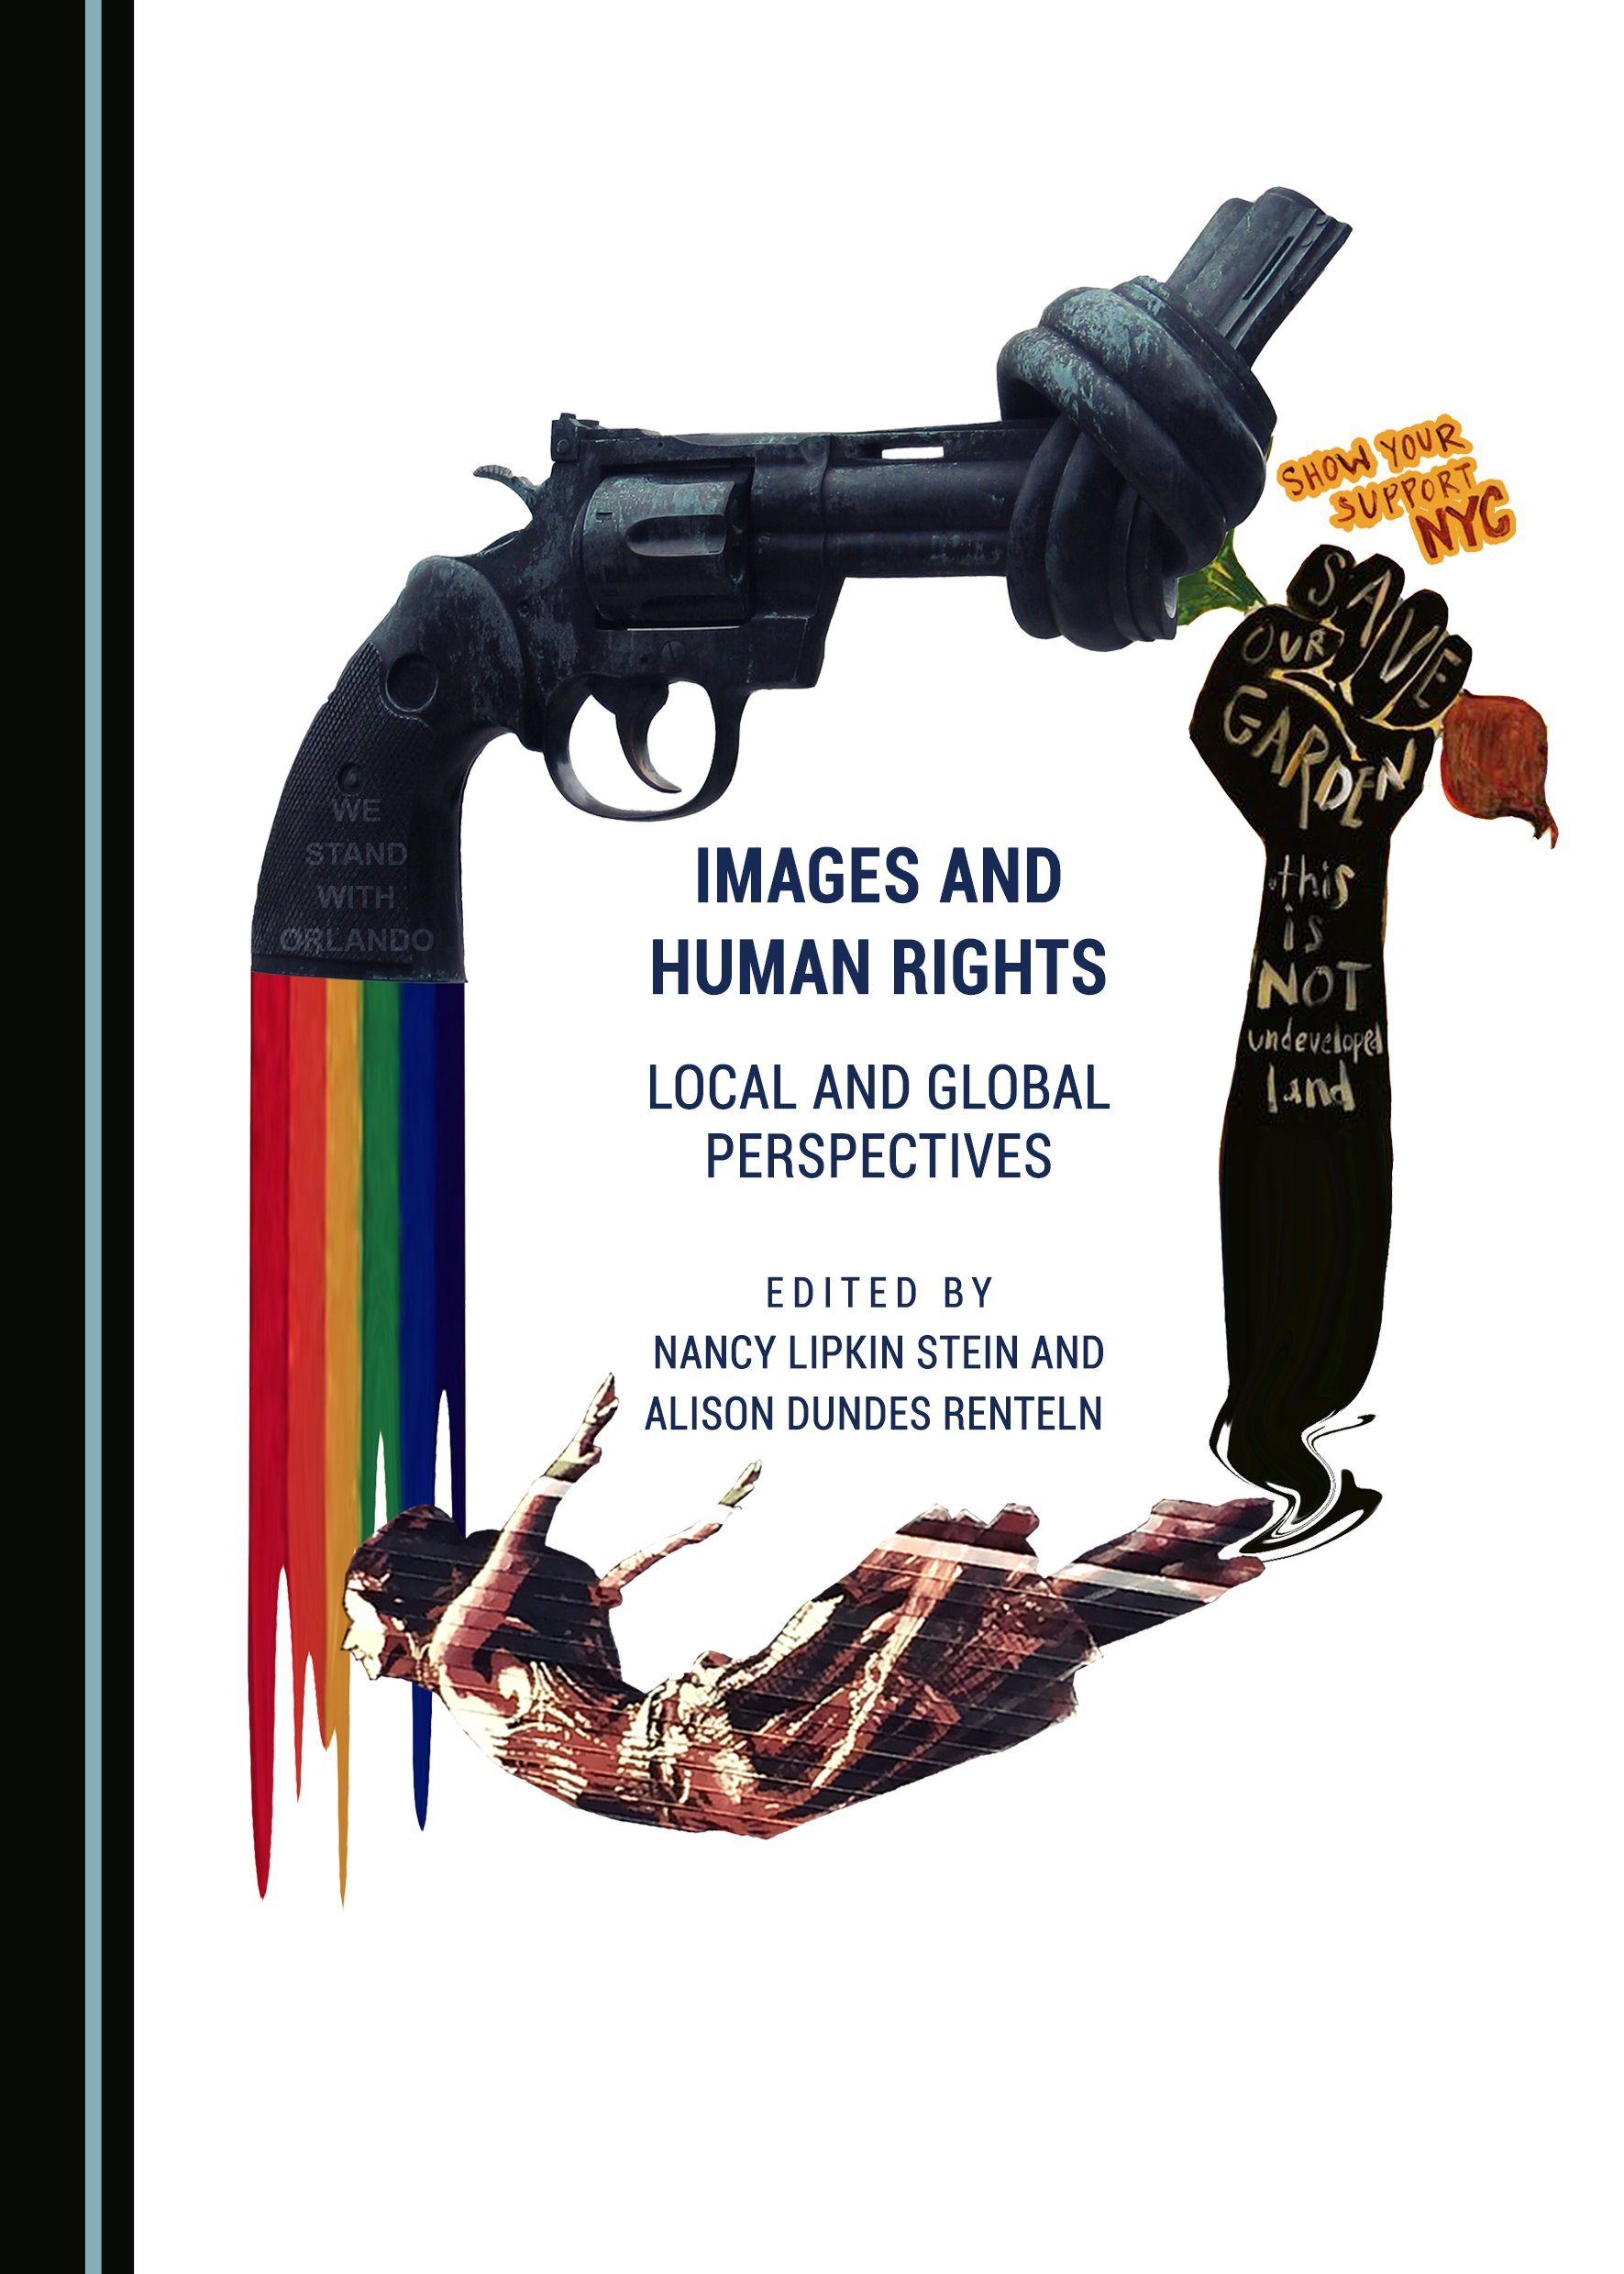 Images and Human Rights: Local and Global Perspectives